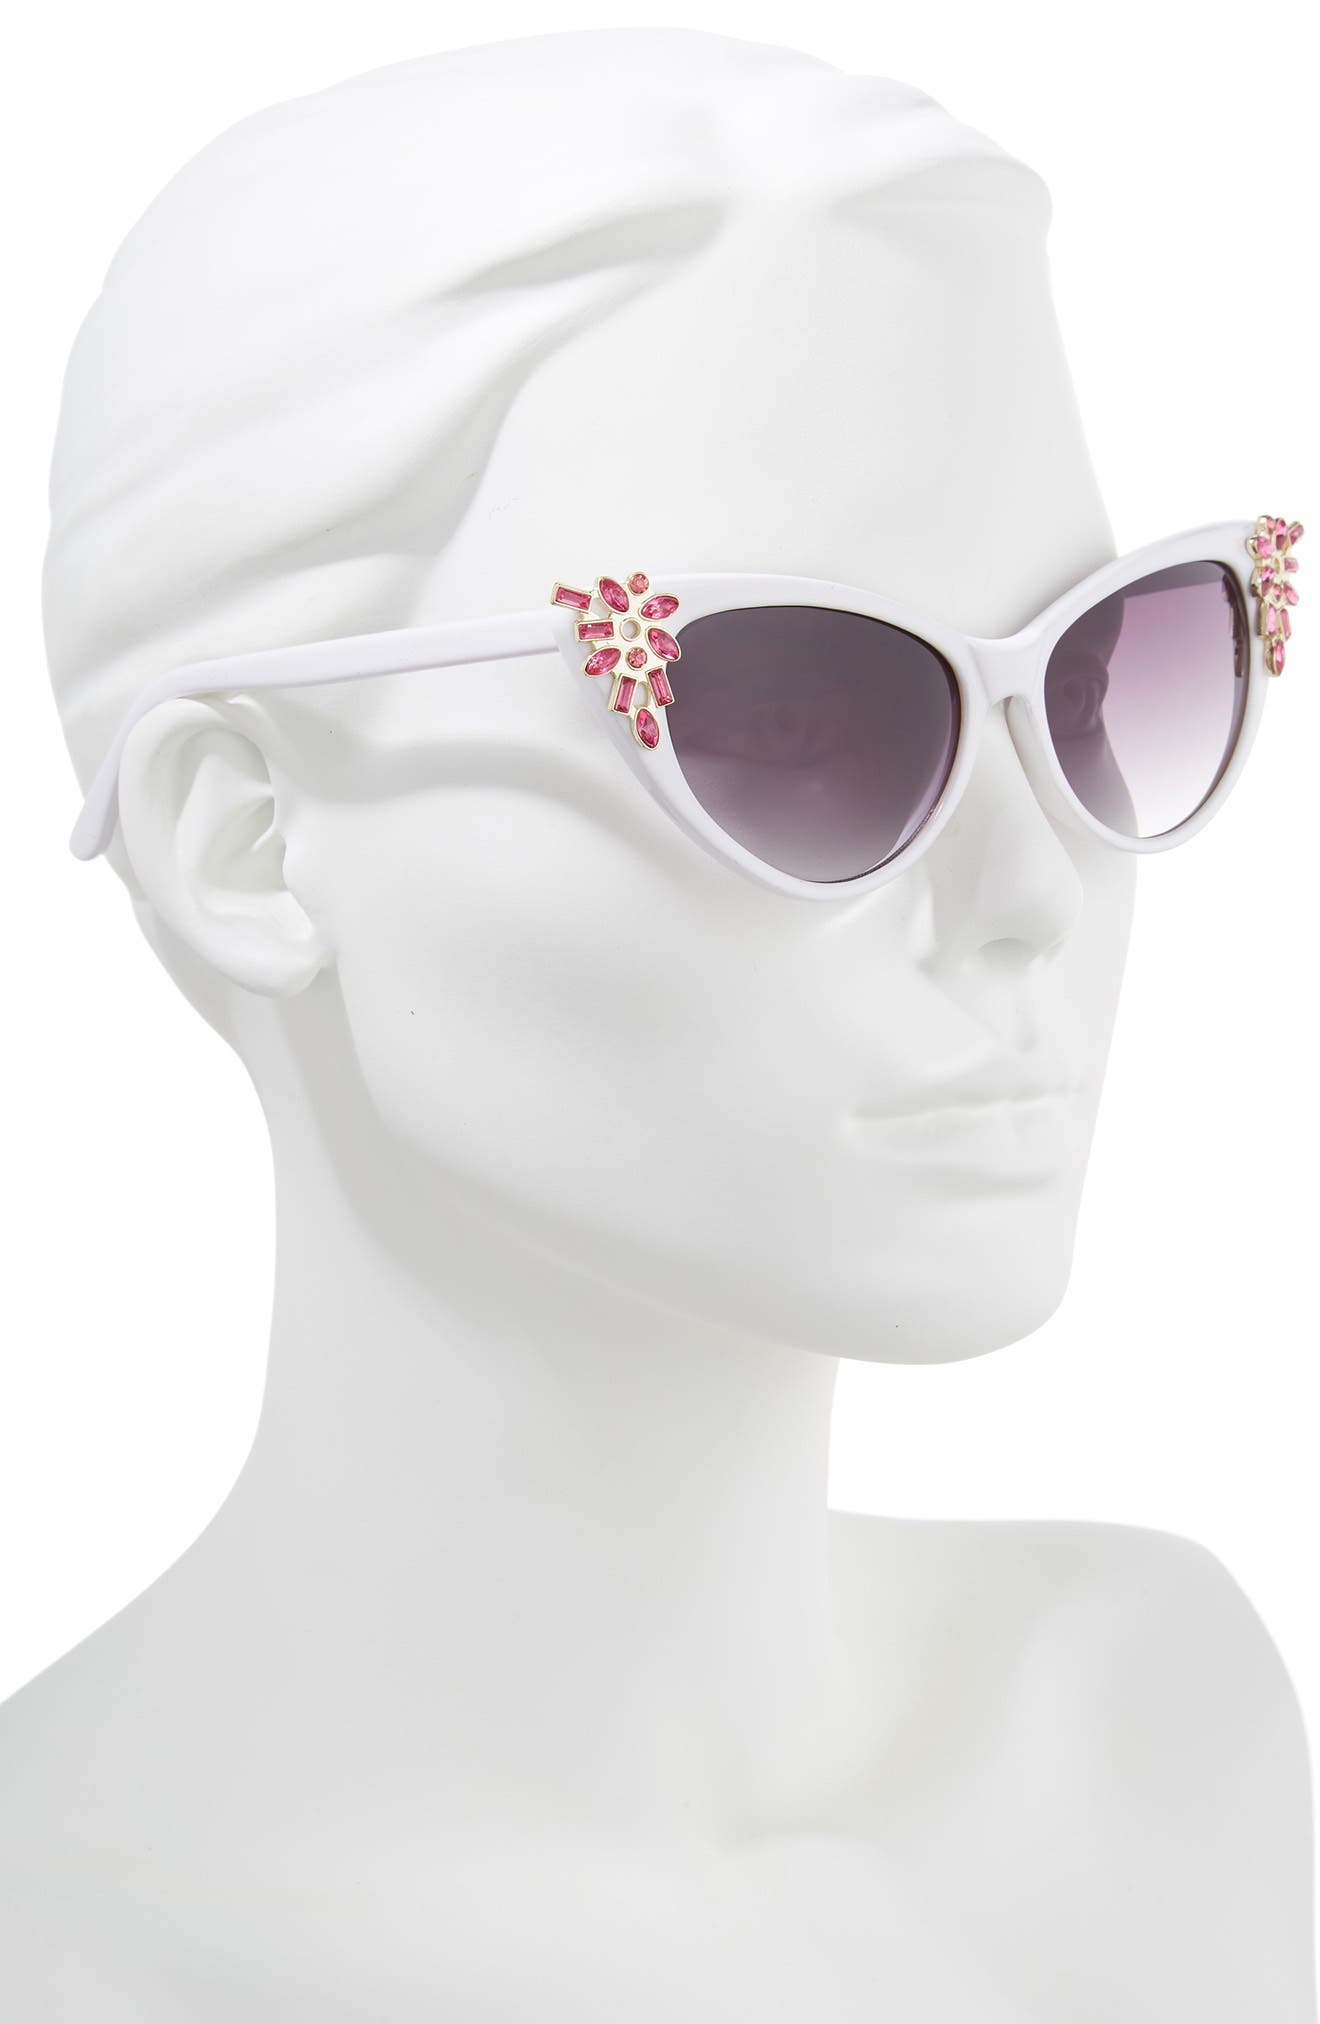 54mm Crystal Exaggerated Cat Eye Sunglasses,                             Alternate thumbnail 2, color,                             WHITE/ PINK